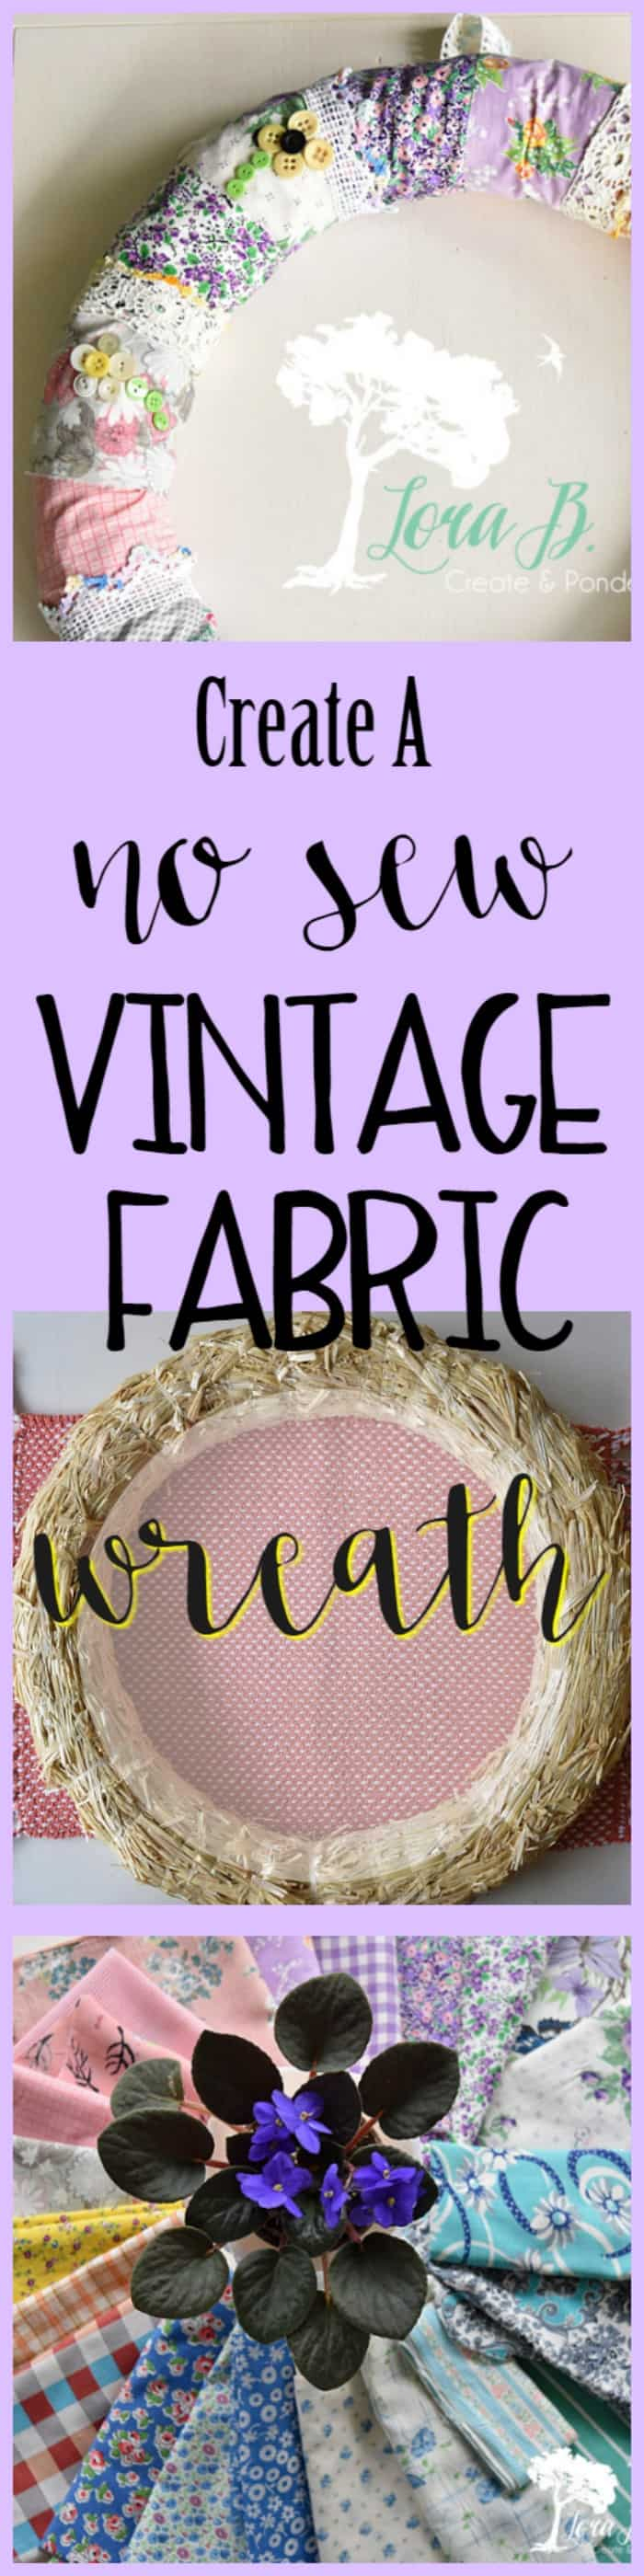 Create a no sew Vintage Fabric Wreath